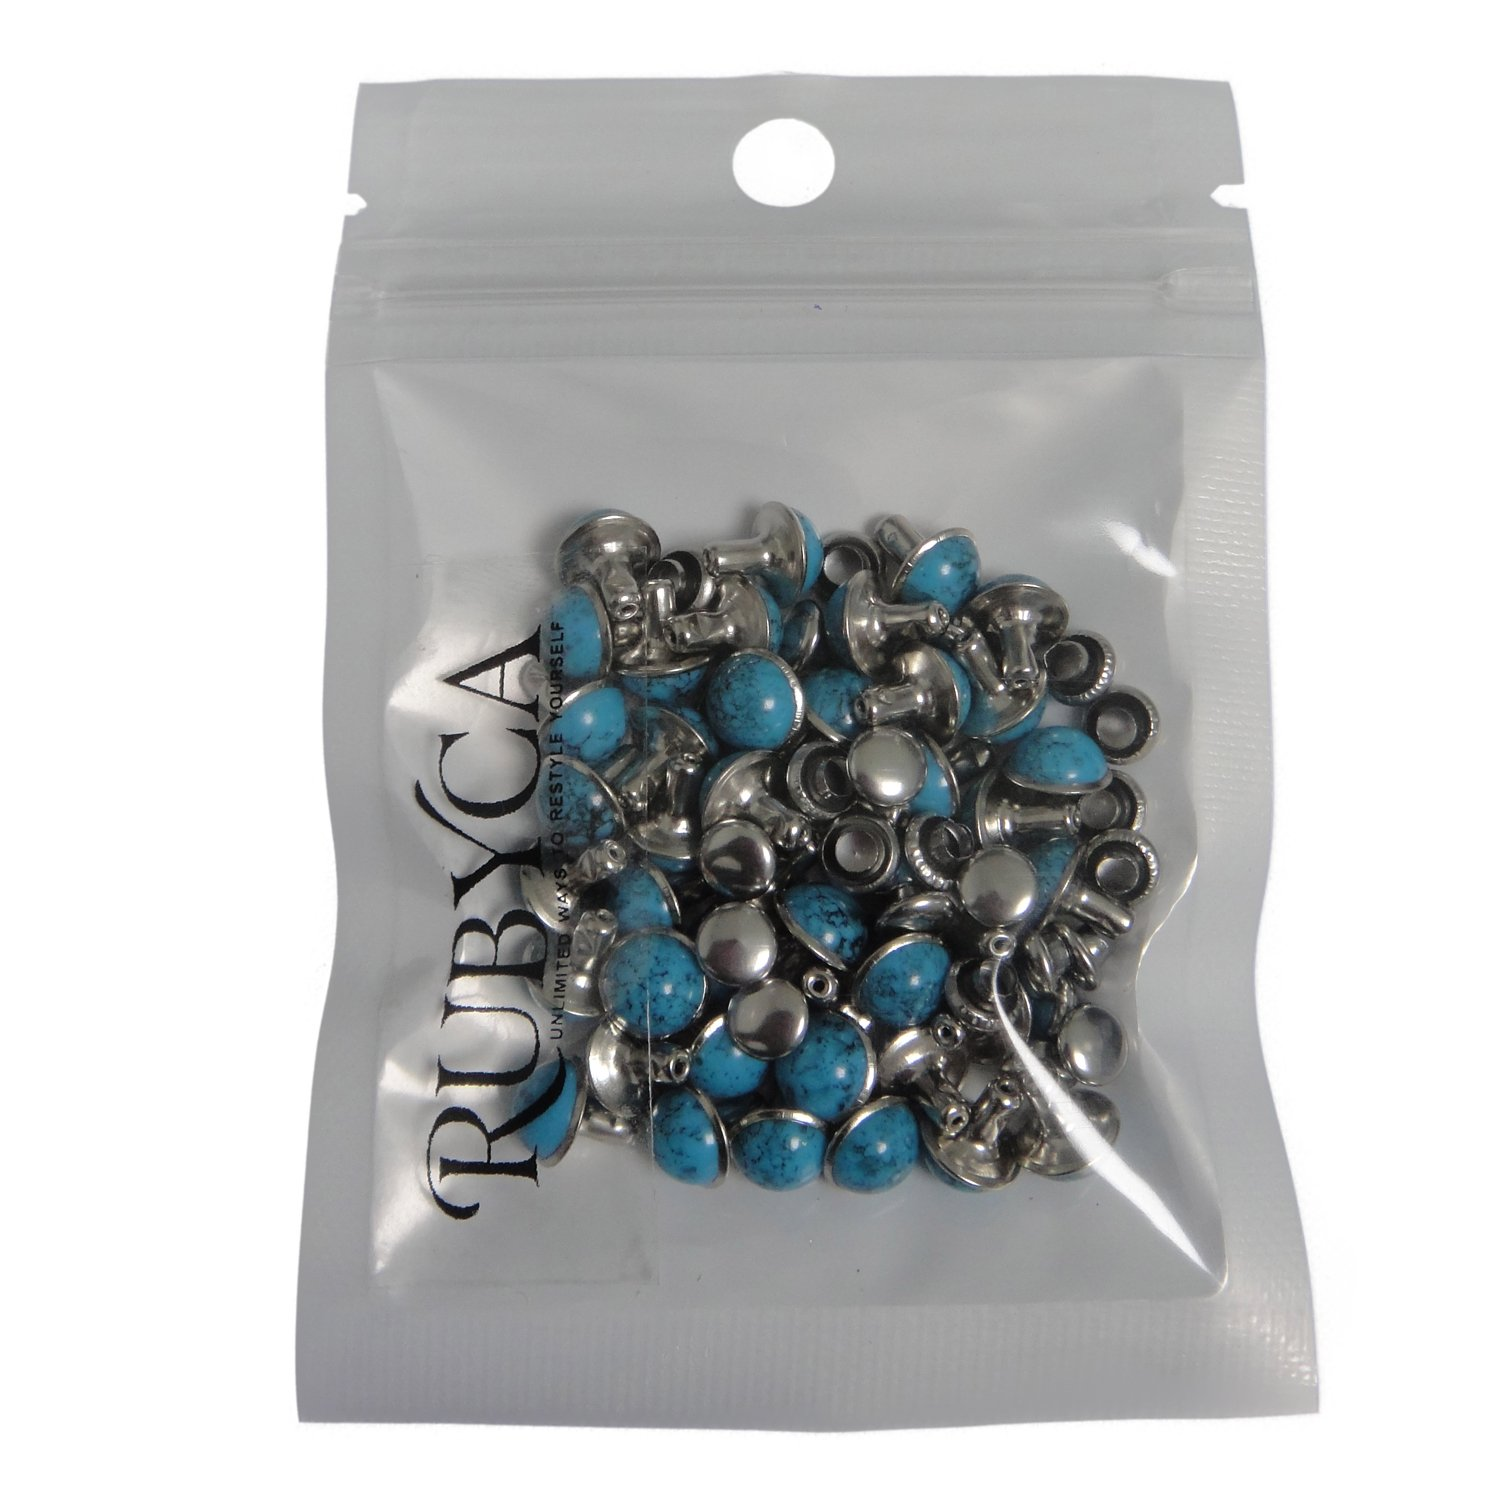 RUBYCA Blue Turquoise Rapid Rivets Studs DIY Leather-Craft for Bag Shoes Bracelet Tandy Leather 10MM 100pcs